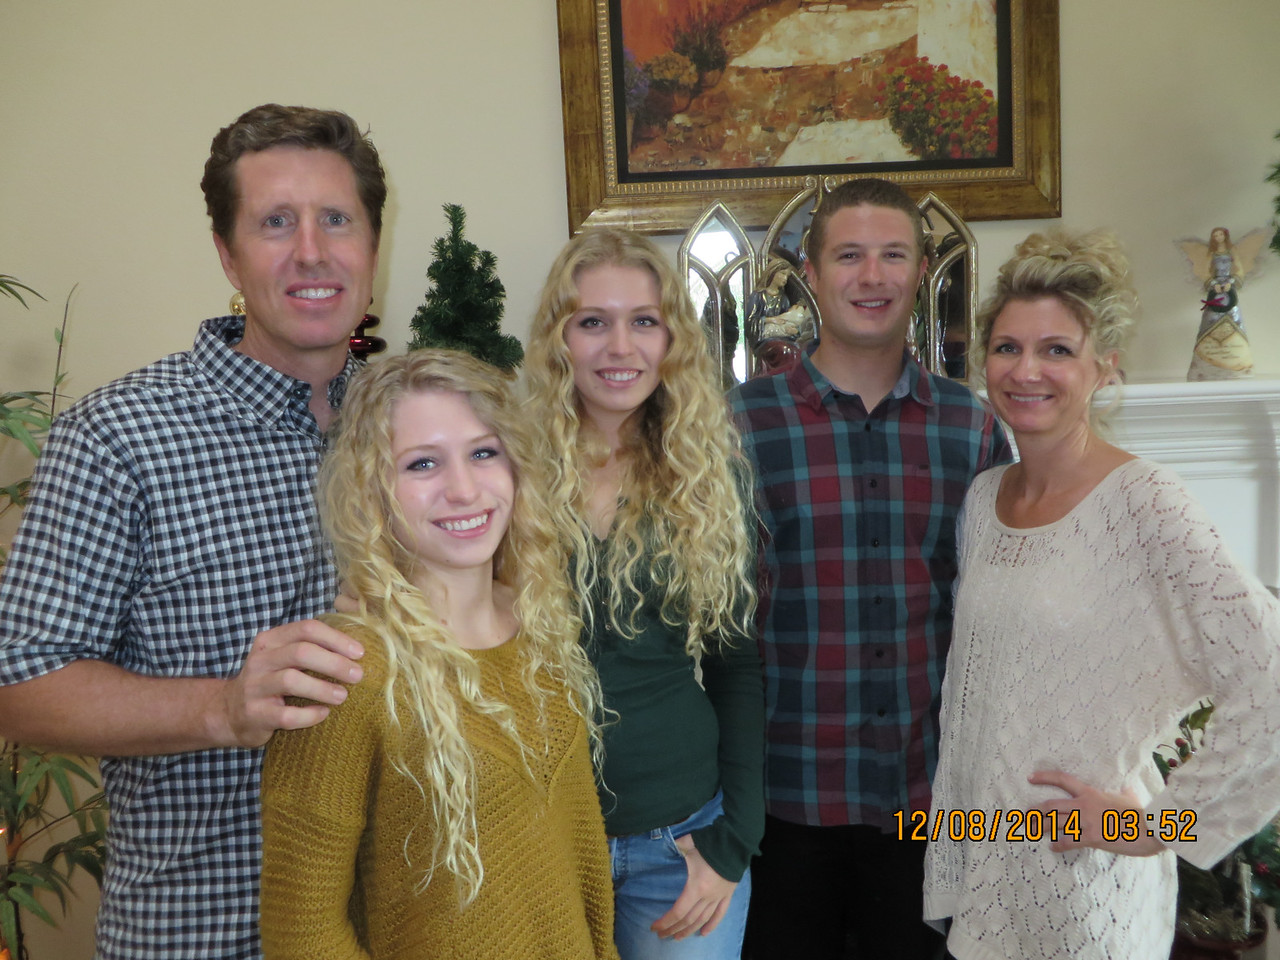 Family Christmas Part on Sunday, December 7, 2014